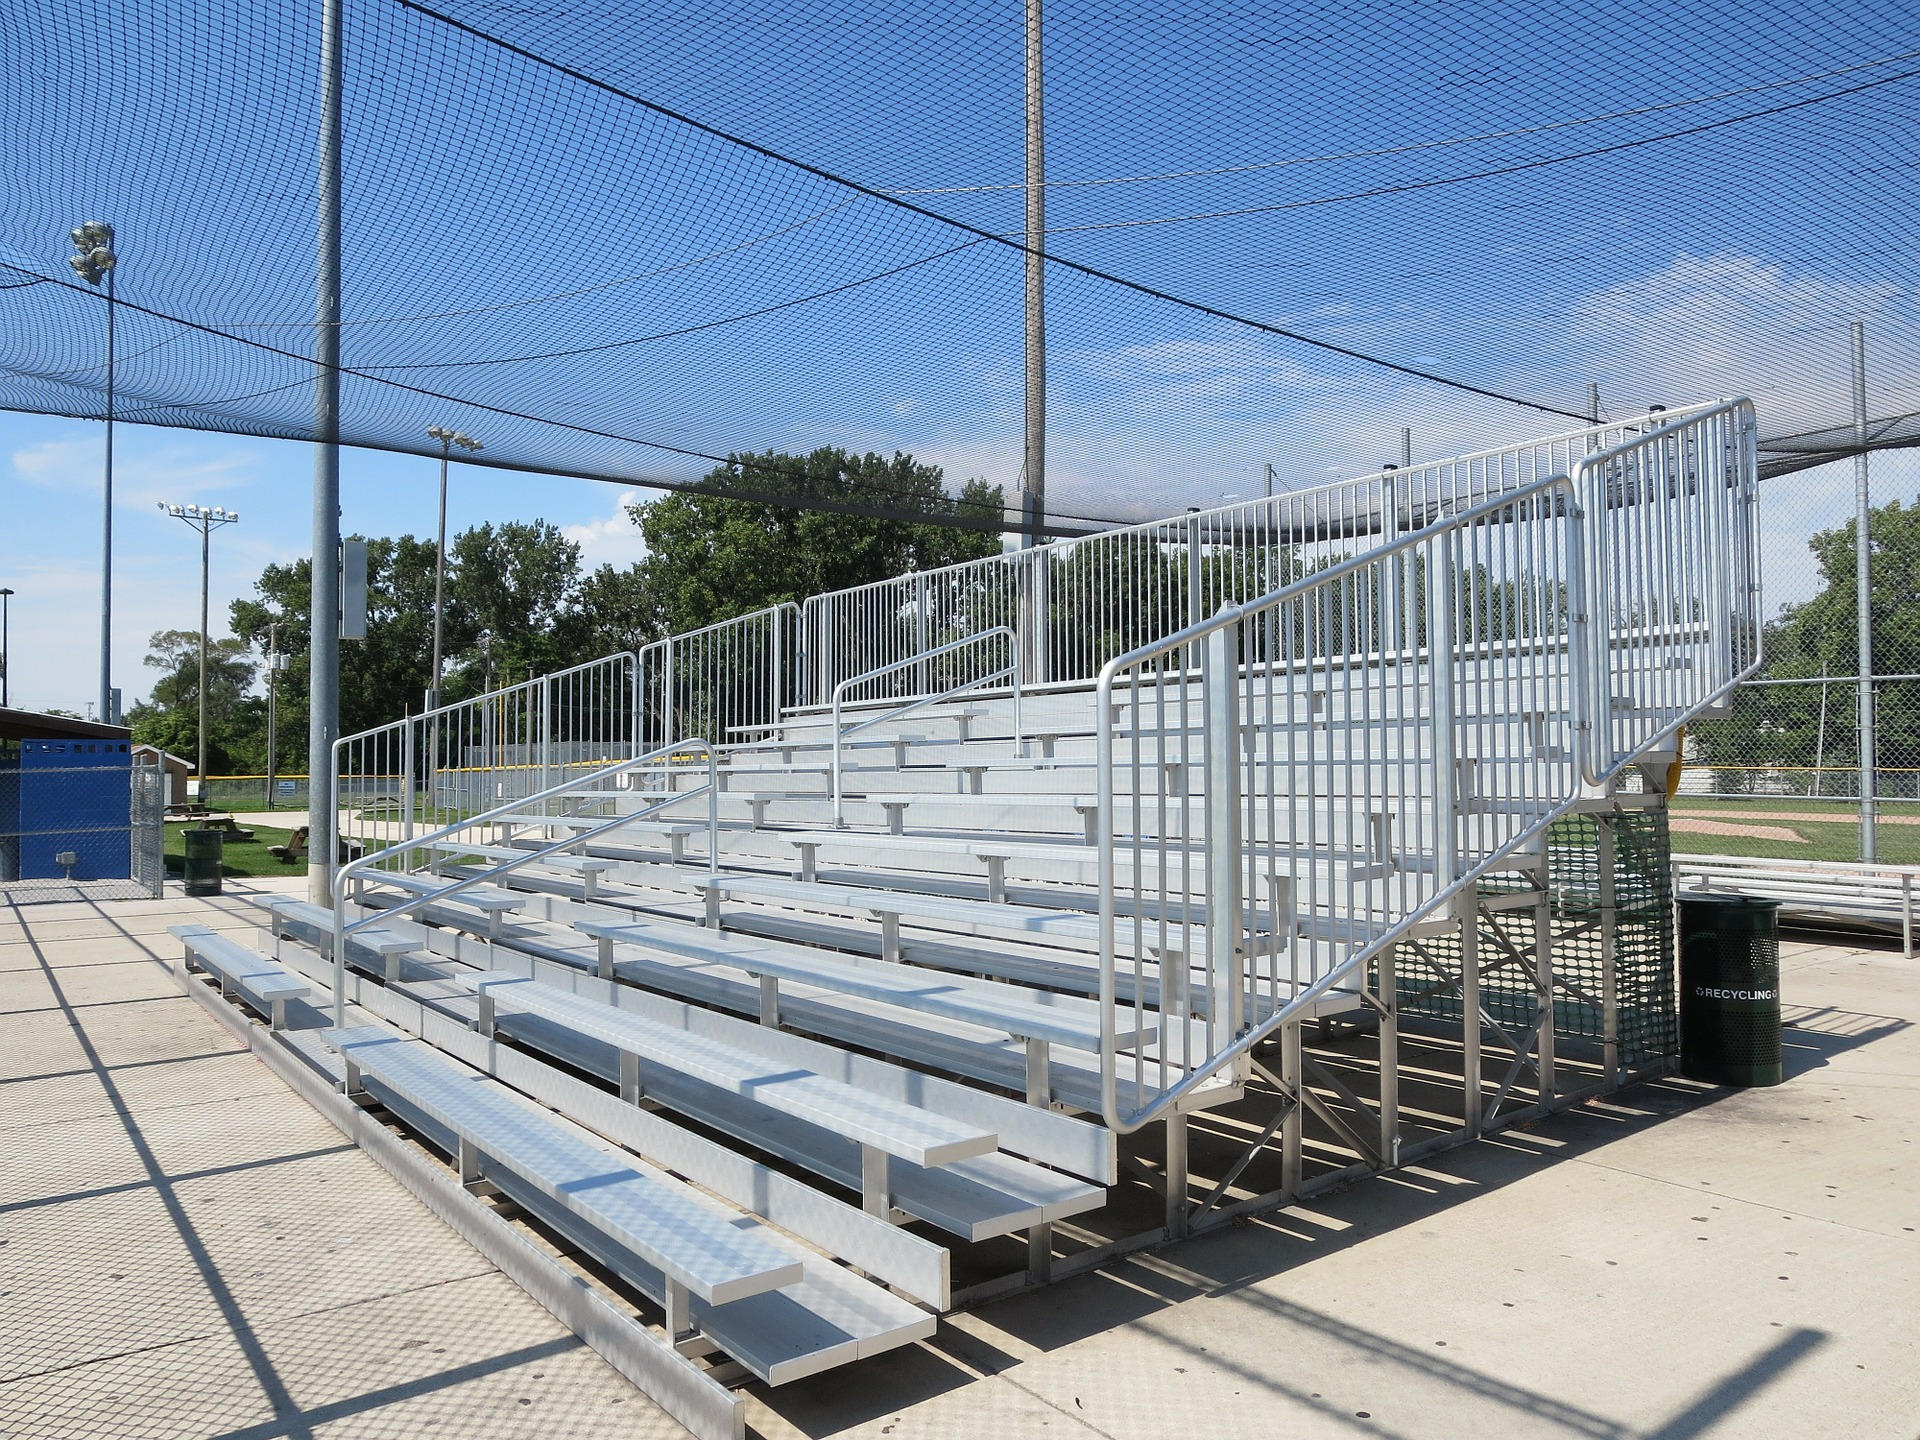 What to Look for When Investing in Aluminum Bleachers